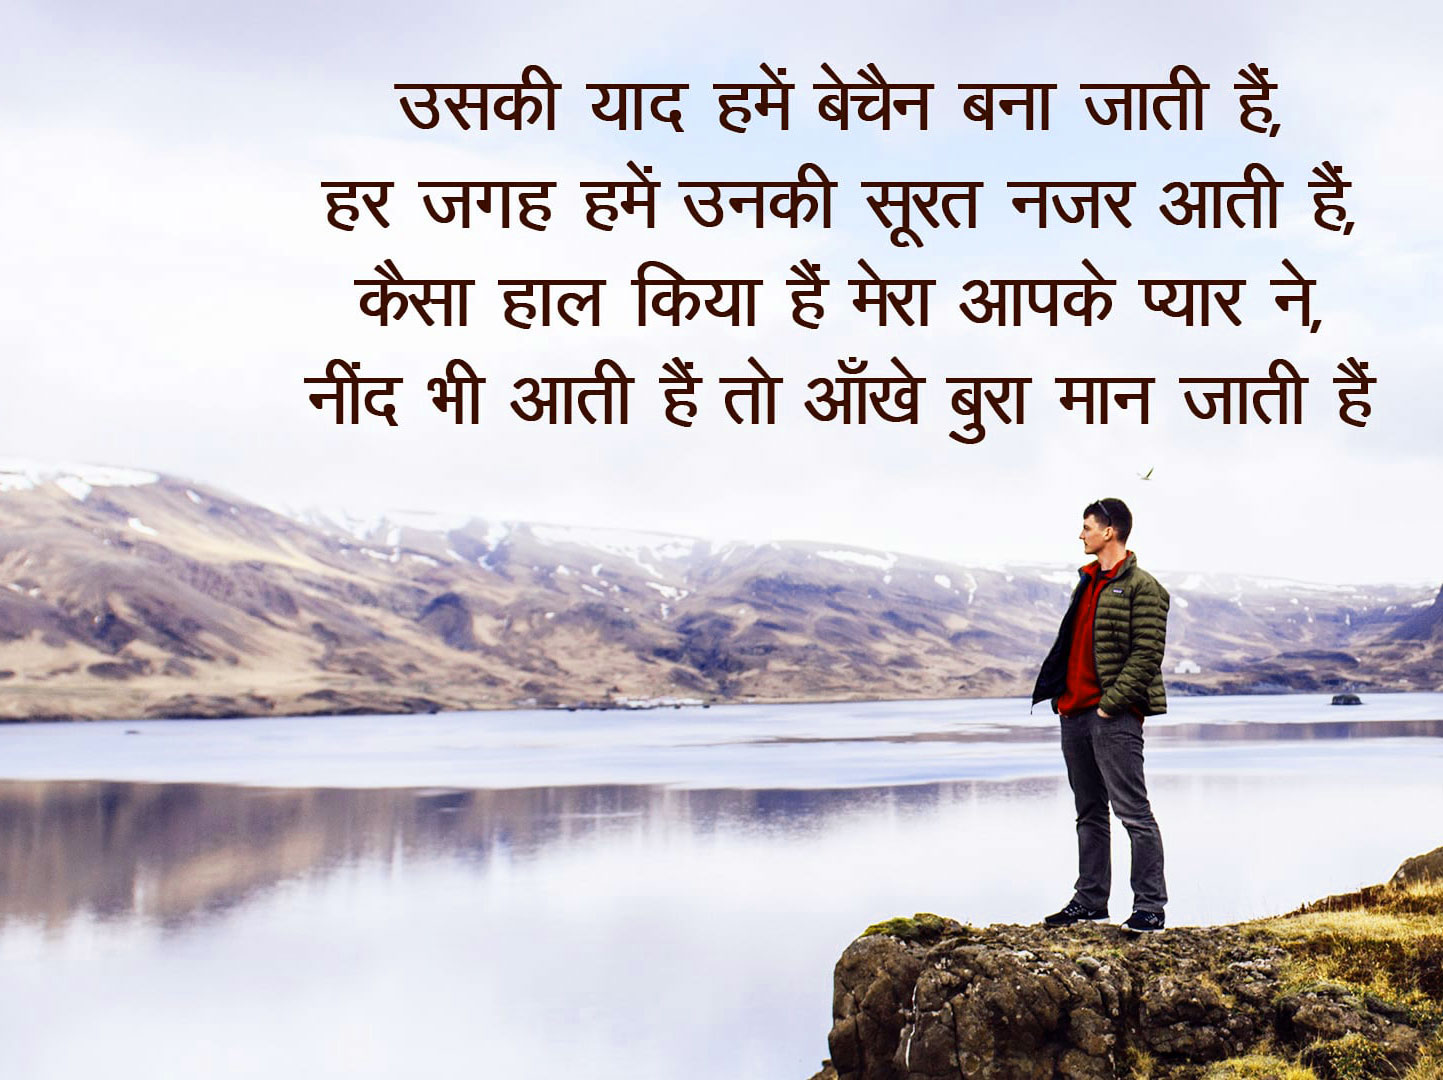 Hindi-Bewafa-Shayari-Images-76